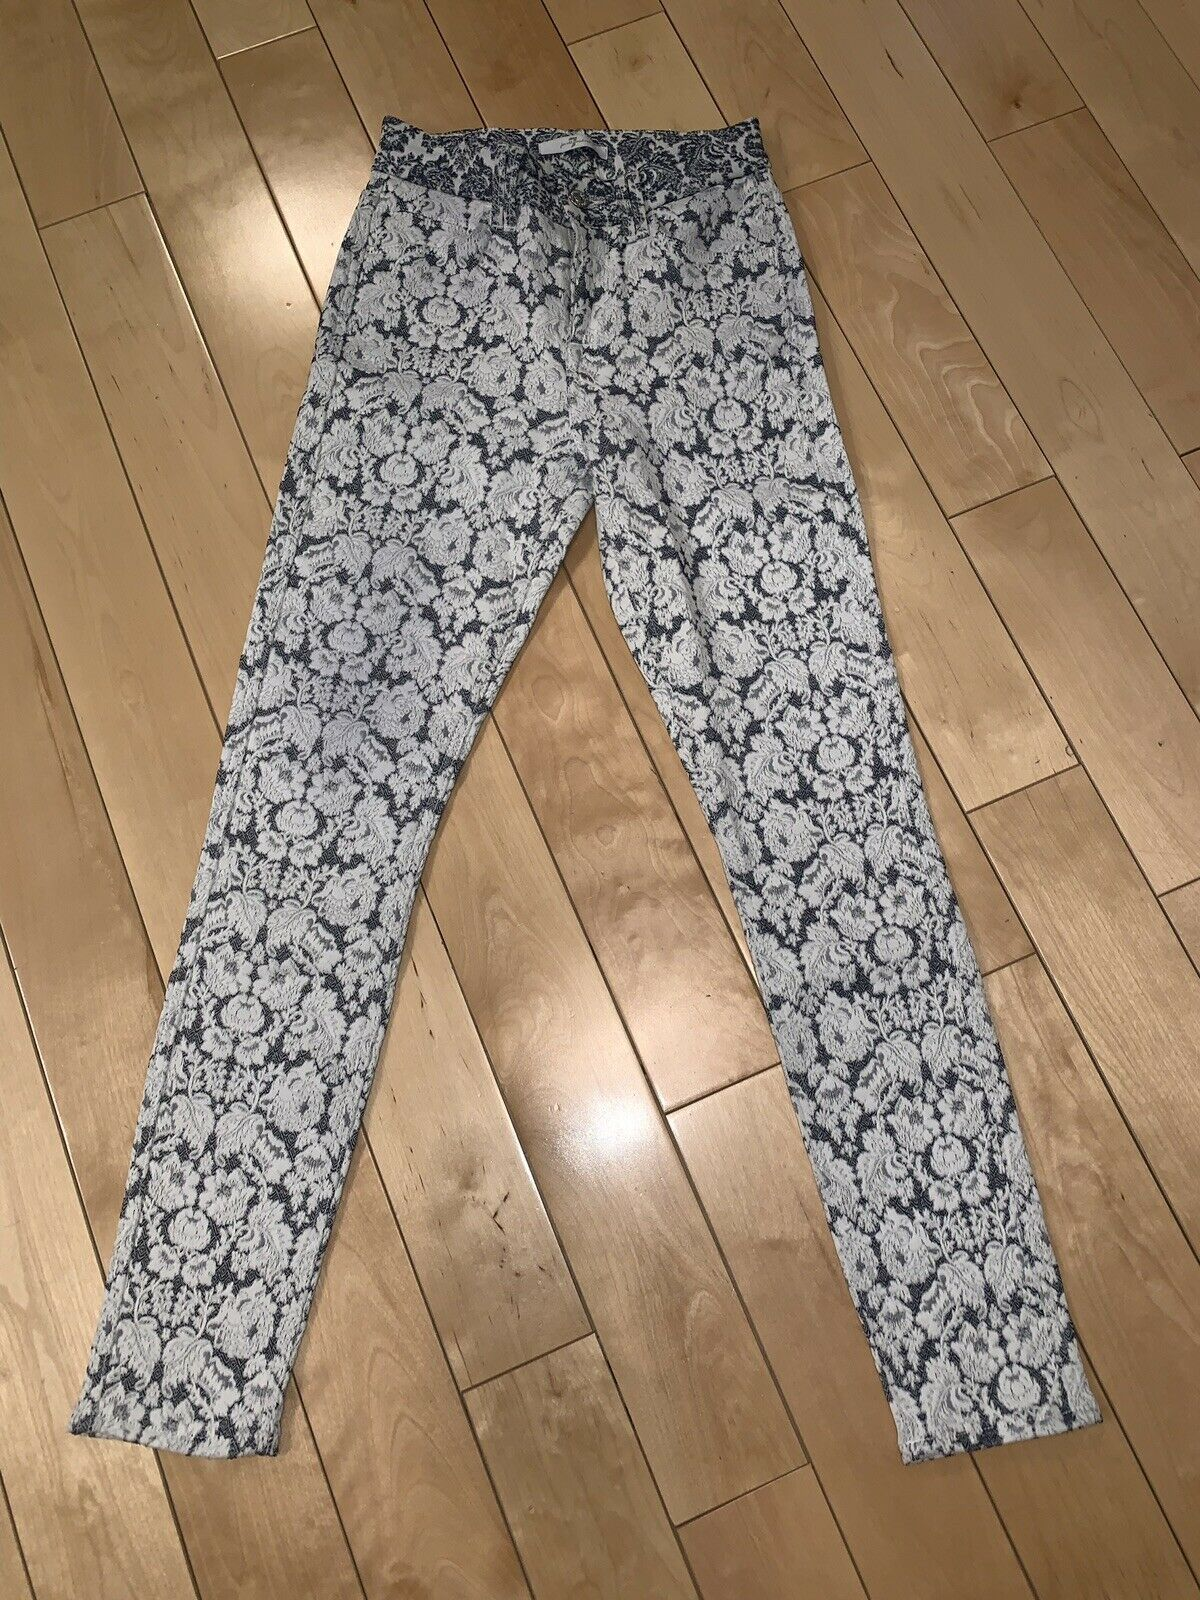 7 jeans for all mankind Skinny Pants,  White Anf bluee, Size 25 With Small Waist